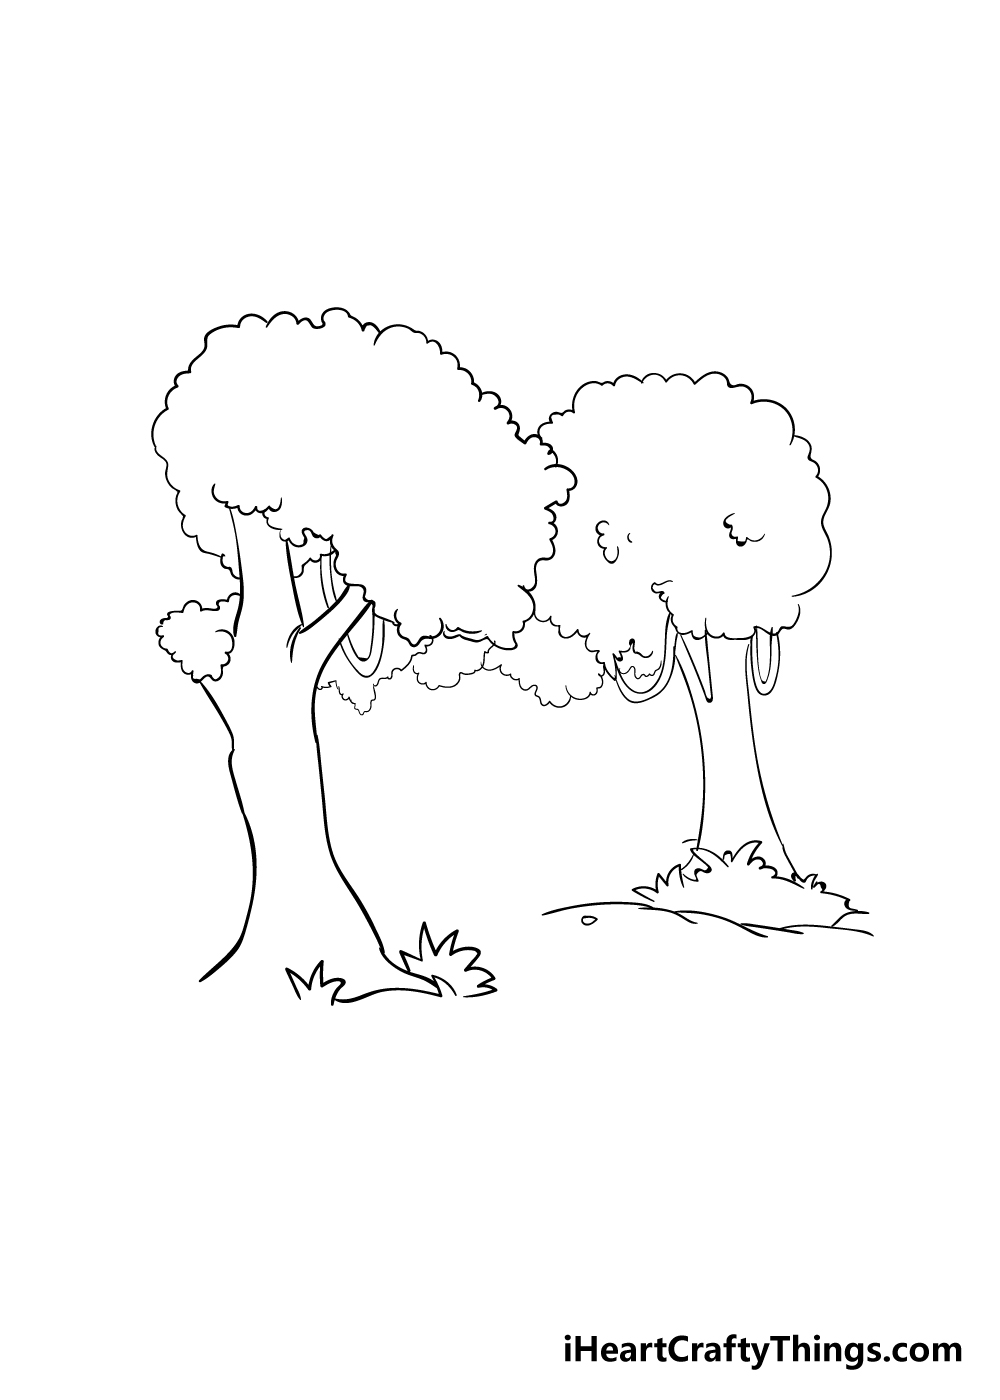 forest drawing step 2